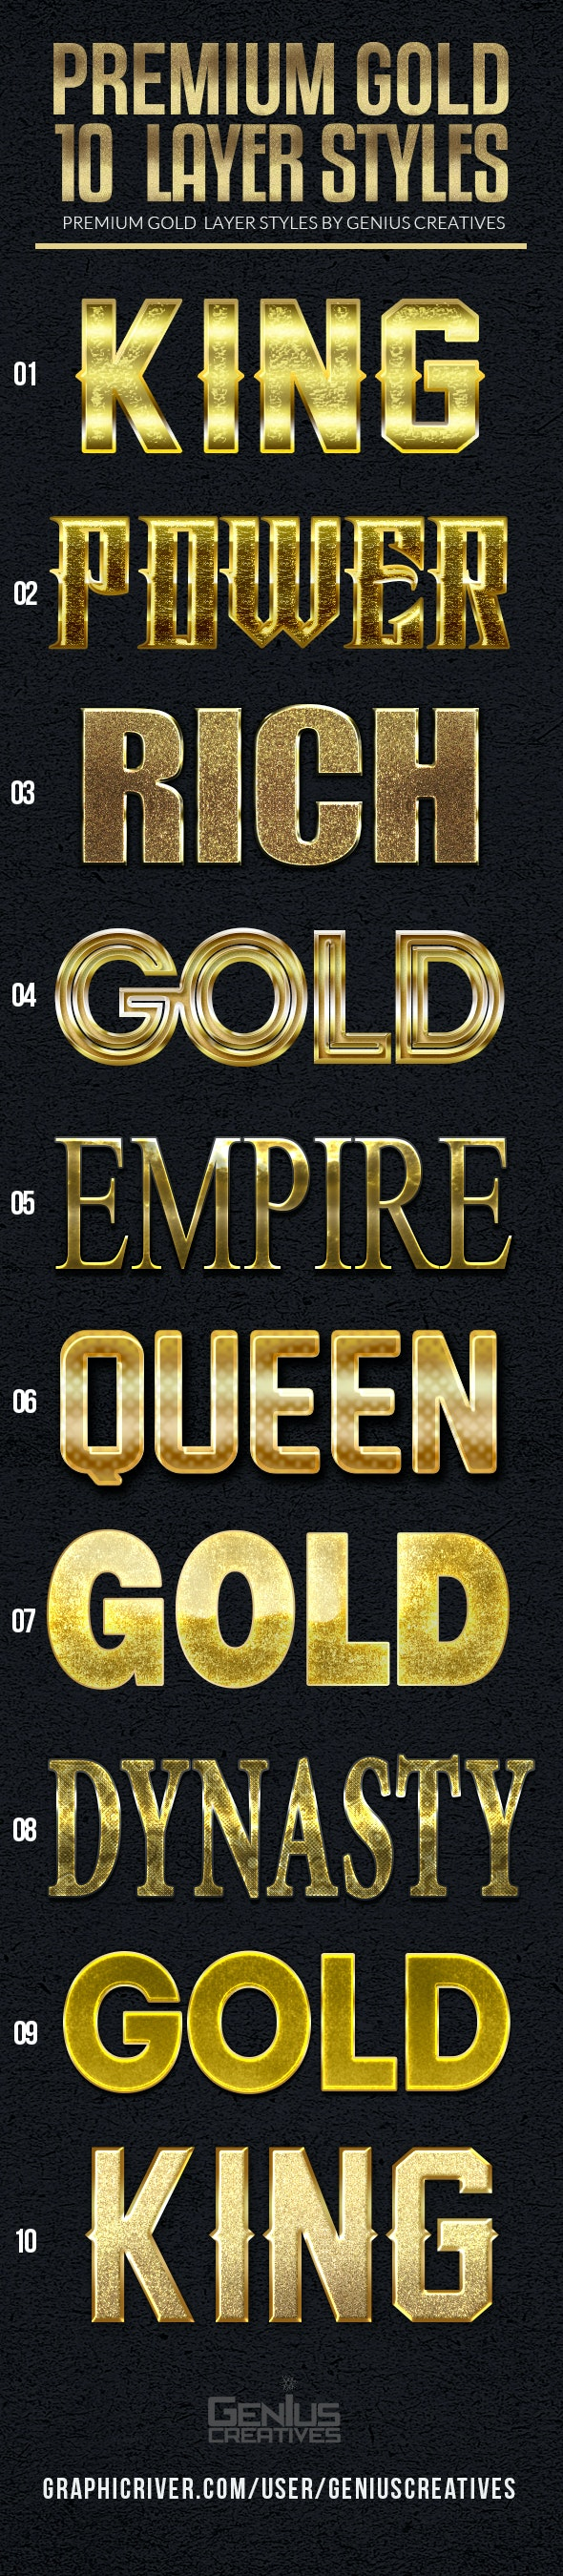 10 Premium Gold Text Styles - Text Effects Styles